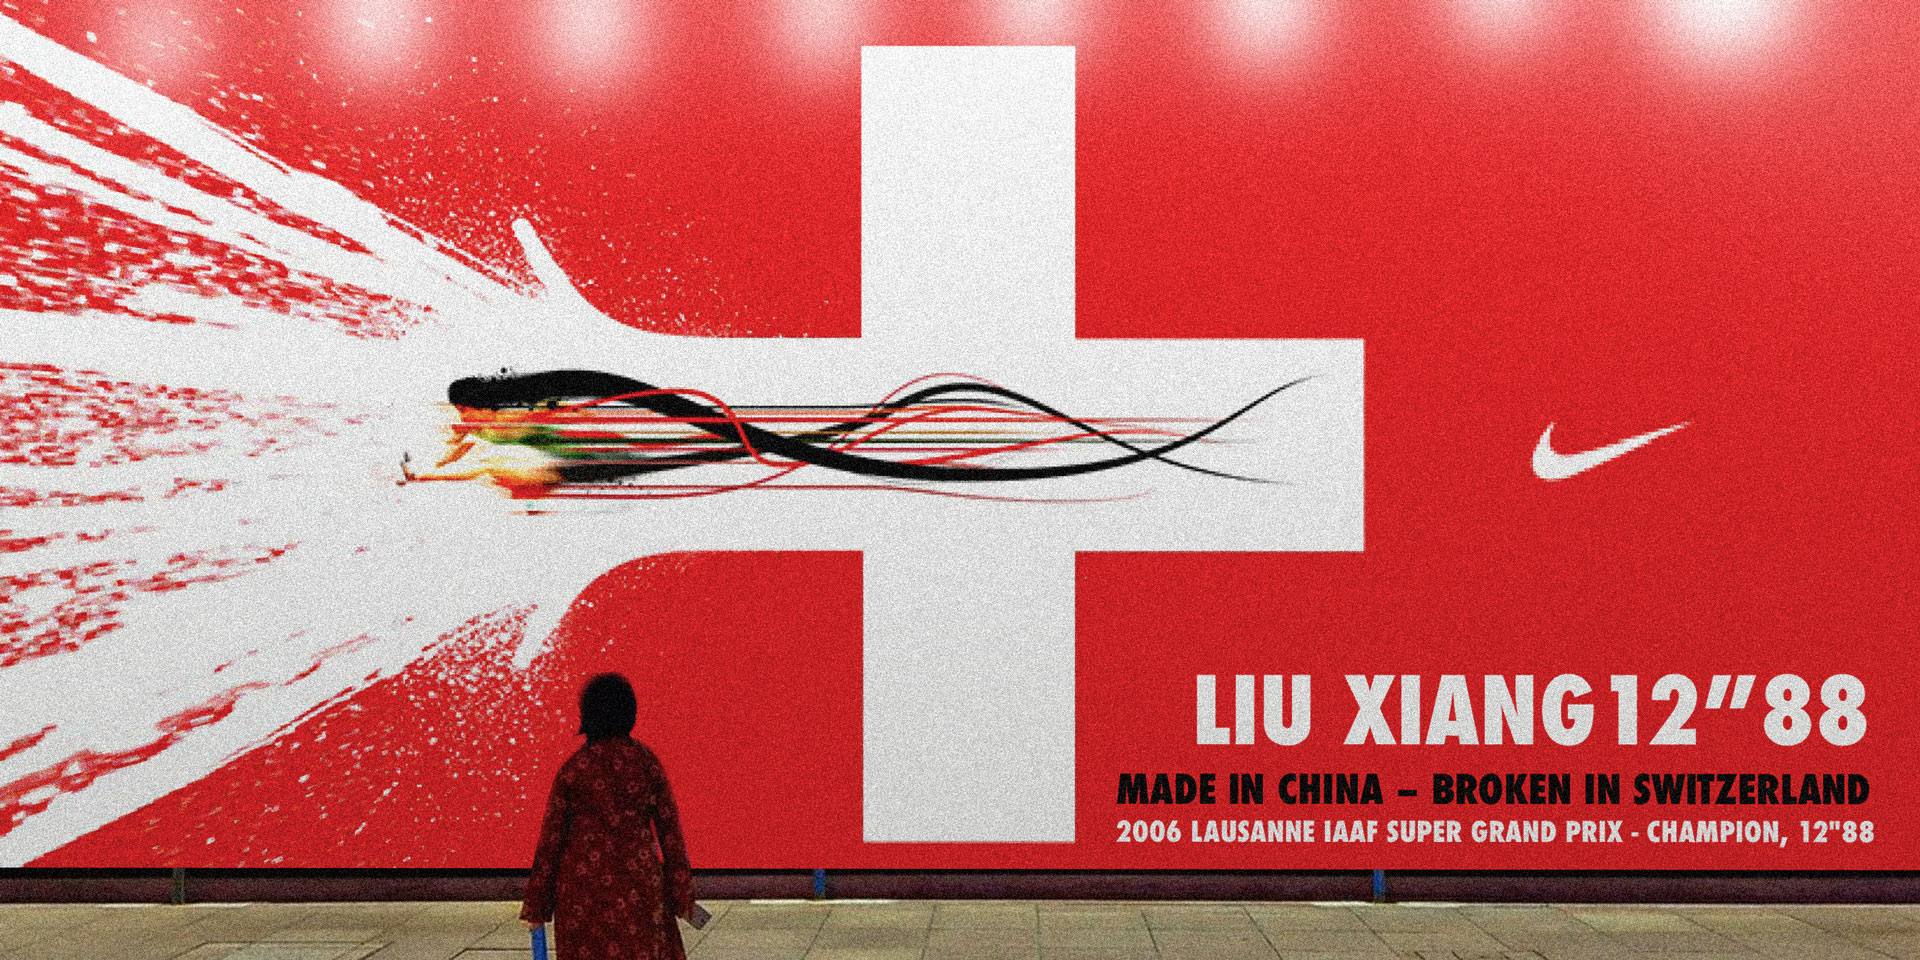 Liu Xiang smashed his personal best and the world record in Lausanne, Switzerland